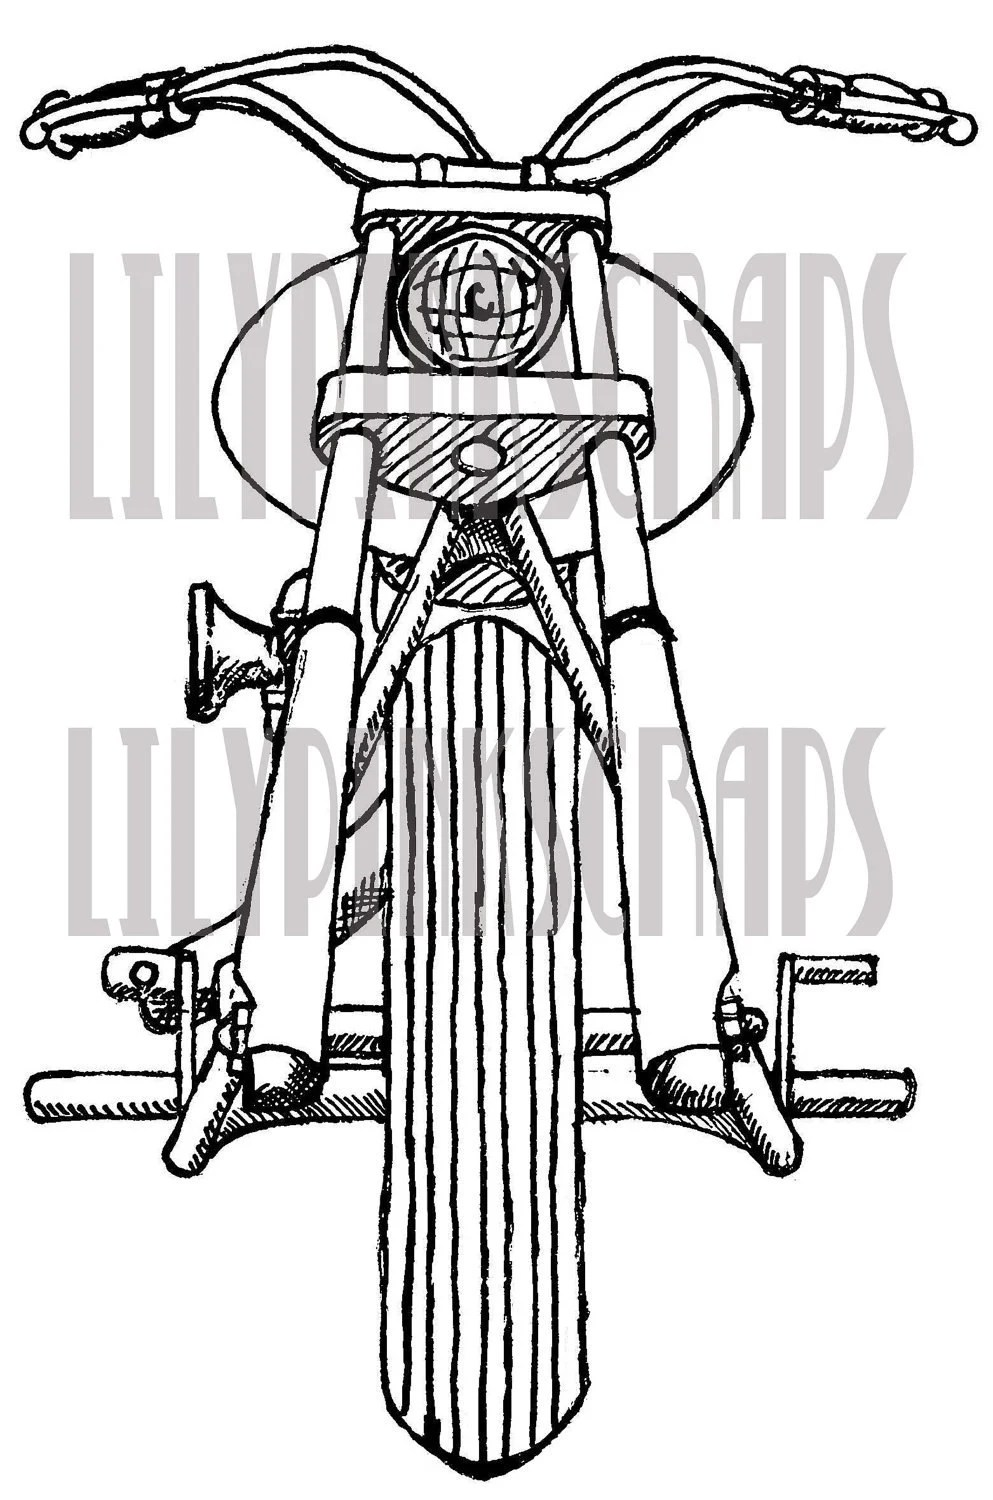 Items similar to Motorcycle digital stamp on Etsy